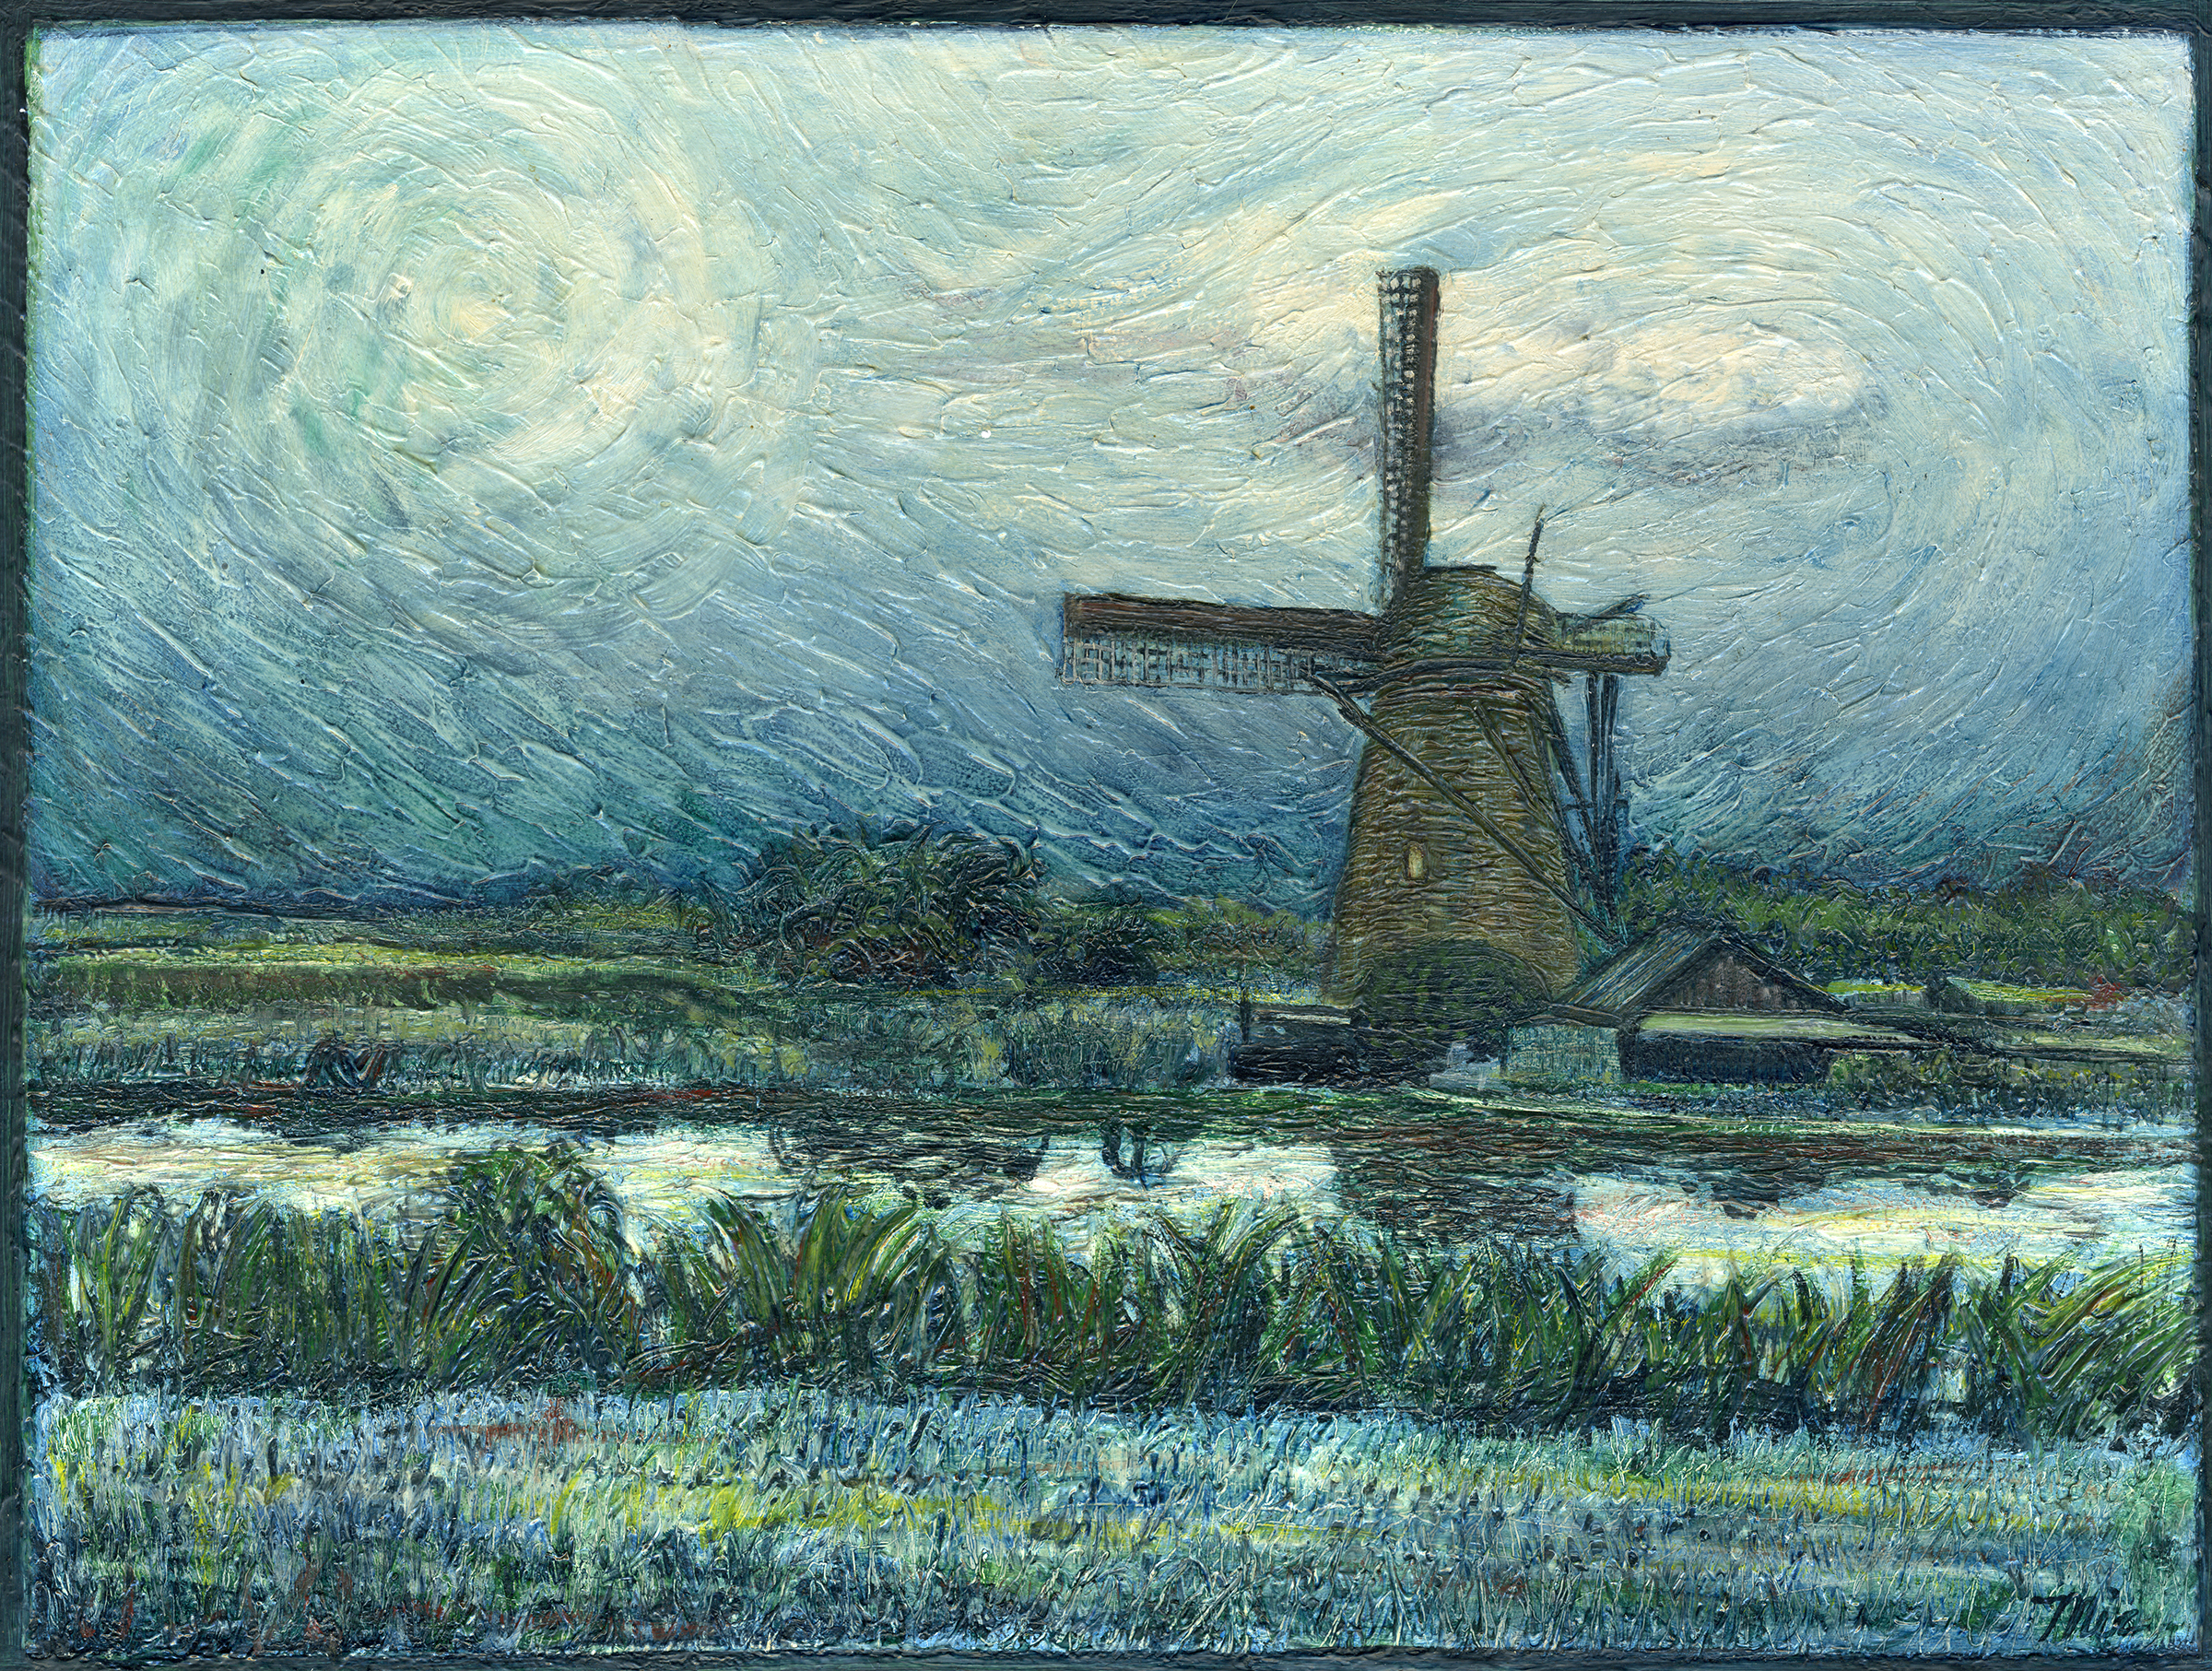 """The Windmill"" Kinderdijk, Holland - Oil Pastel, Private collection on Jhon and Allison KleynGiclee Limited Edition and canvas prints are available. Please visit the prints gallery."